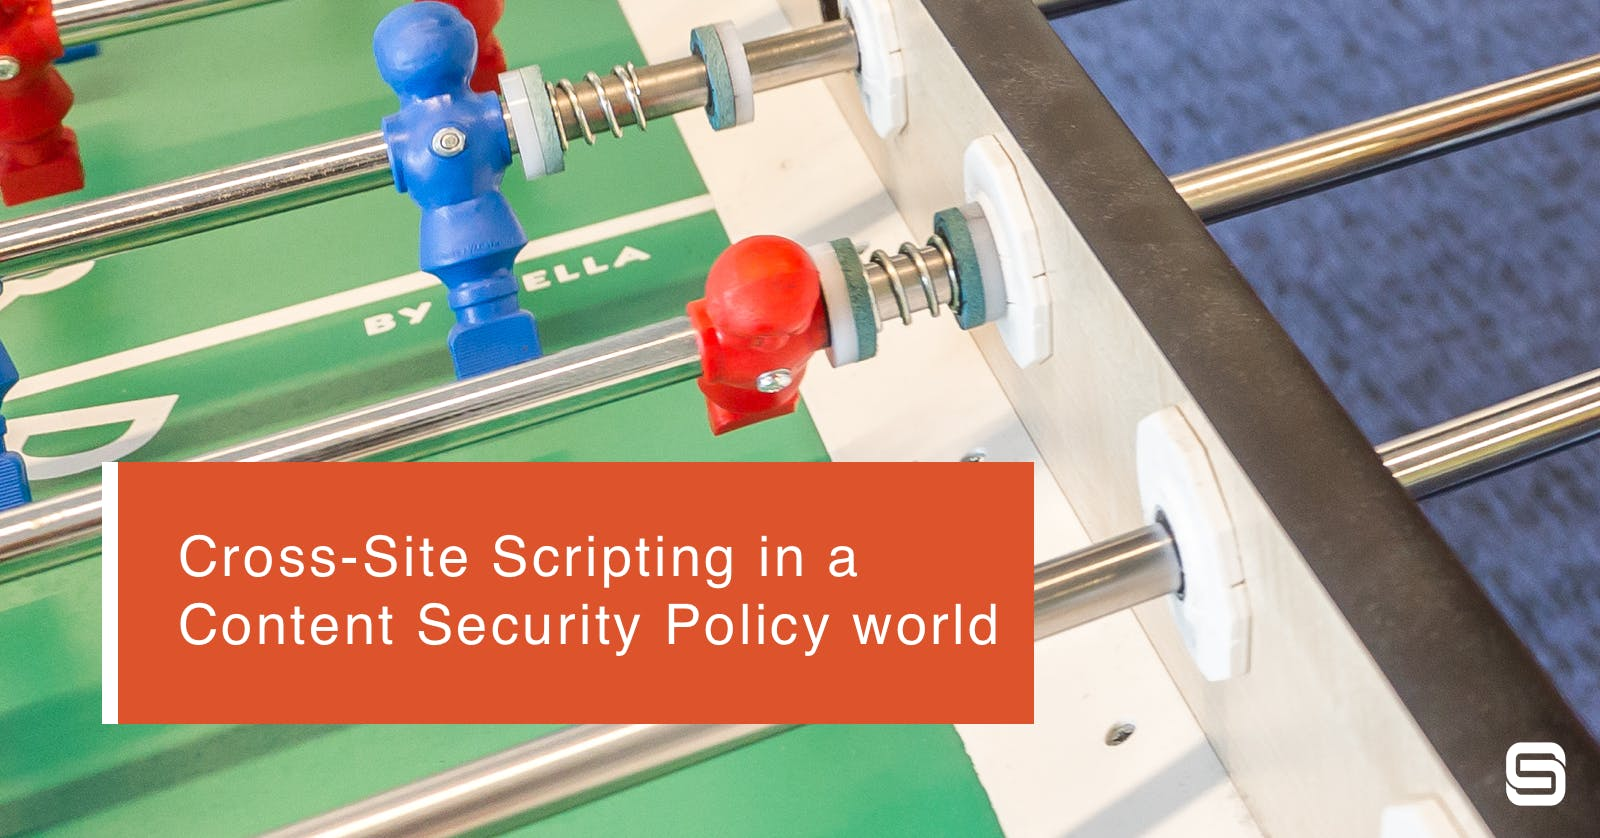 Cross-Site Scripting in a Content Security Policy world